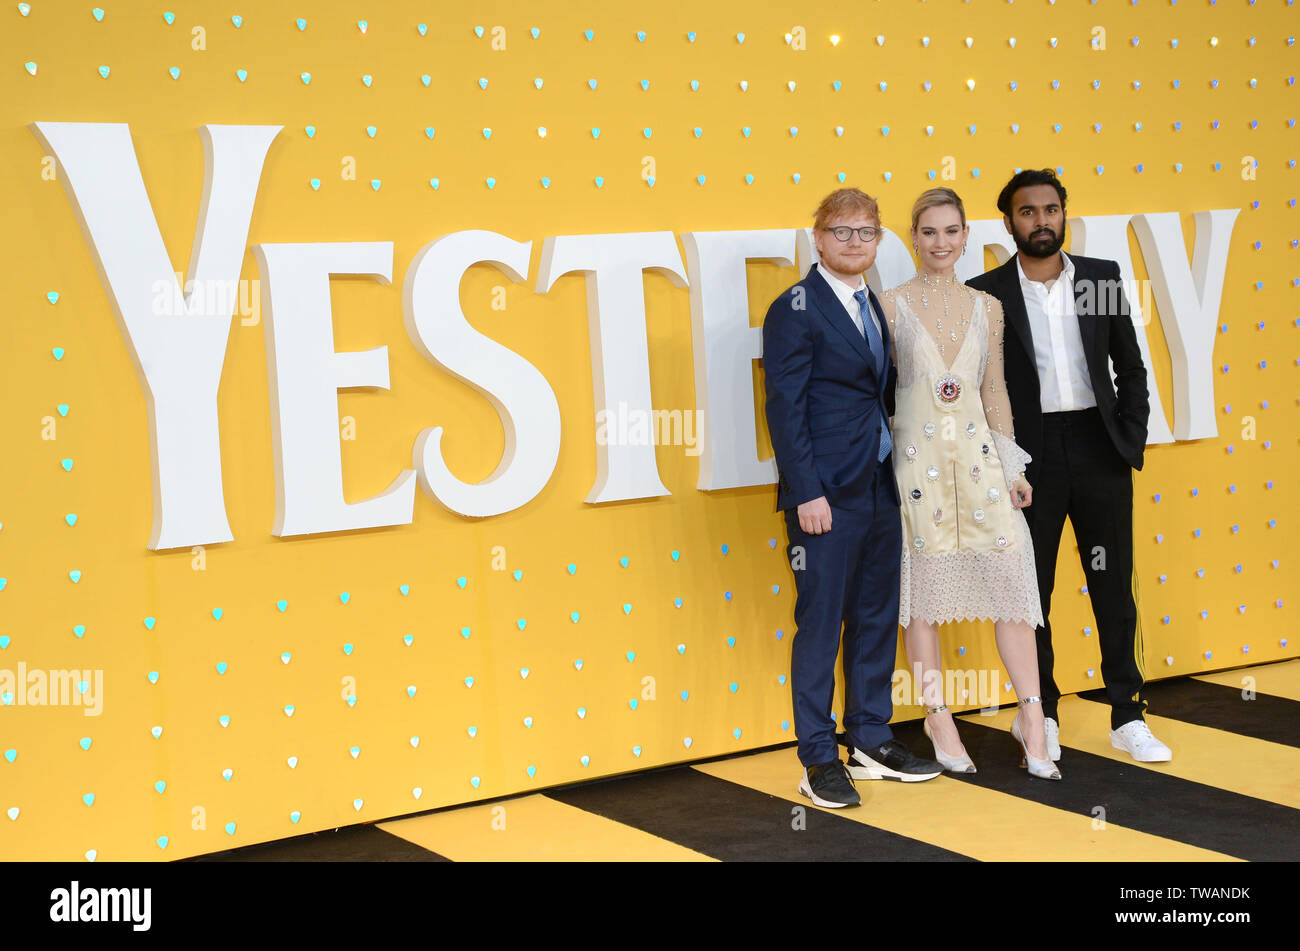 Photo Must Be Credited ©Alpha Press 078237 18/06/2019 Ed Sheeran, Lily James and Himesh Patel at the Yesterday Premiere held at Odeon Luxe Leicester Square in London. - Stock Image